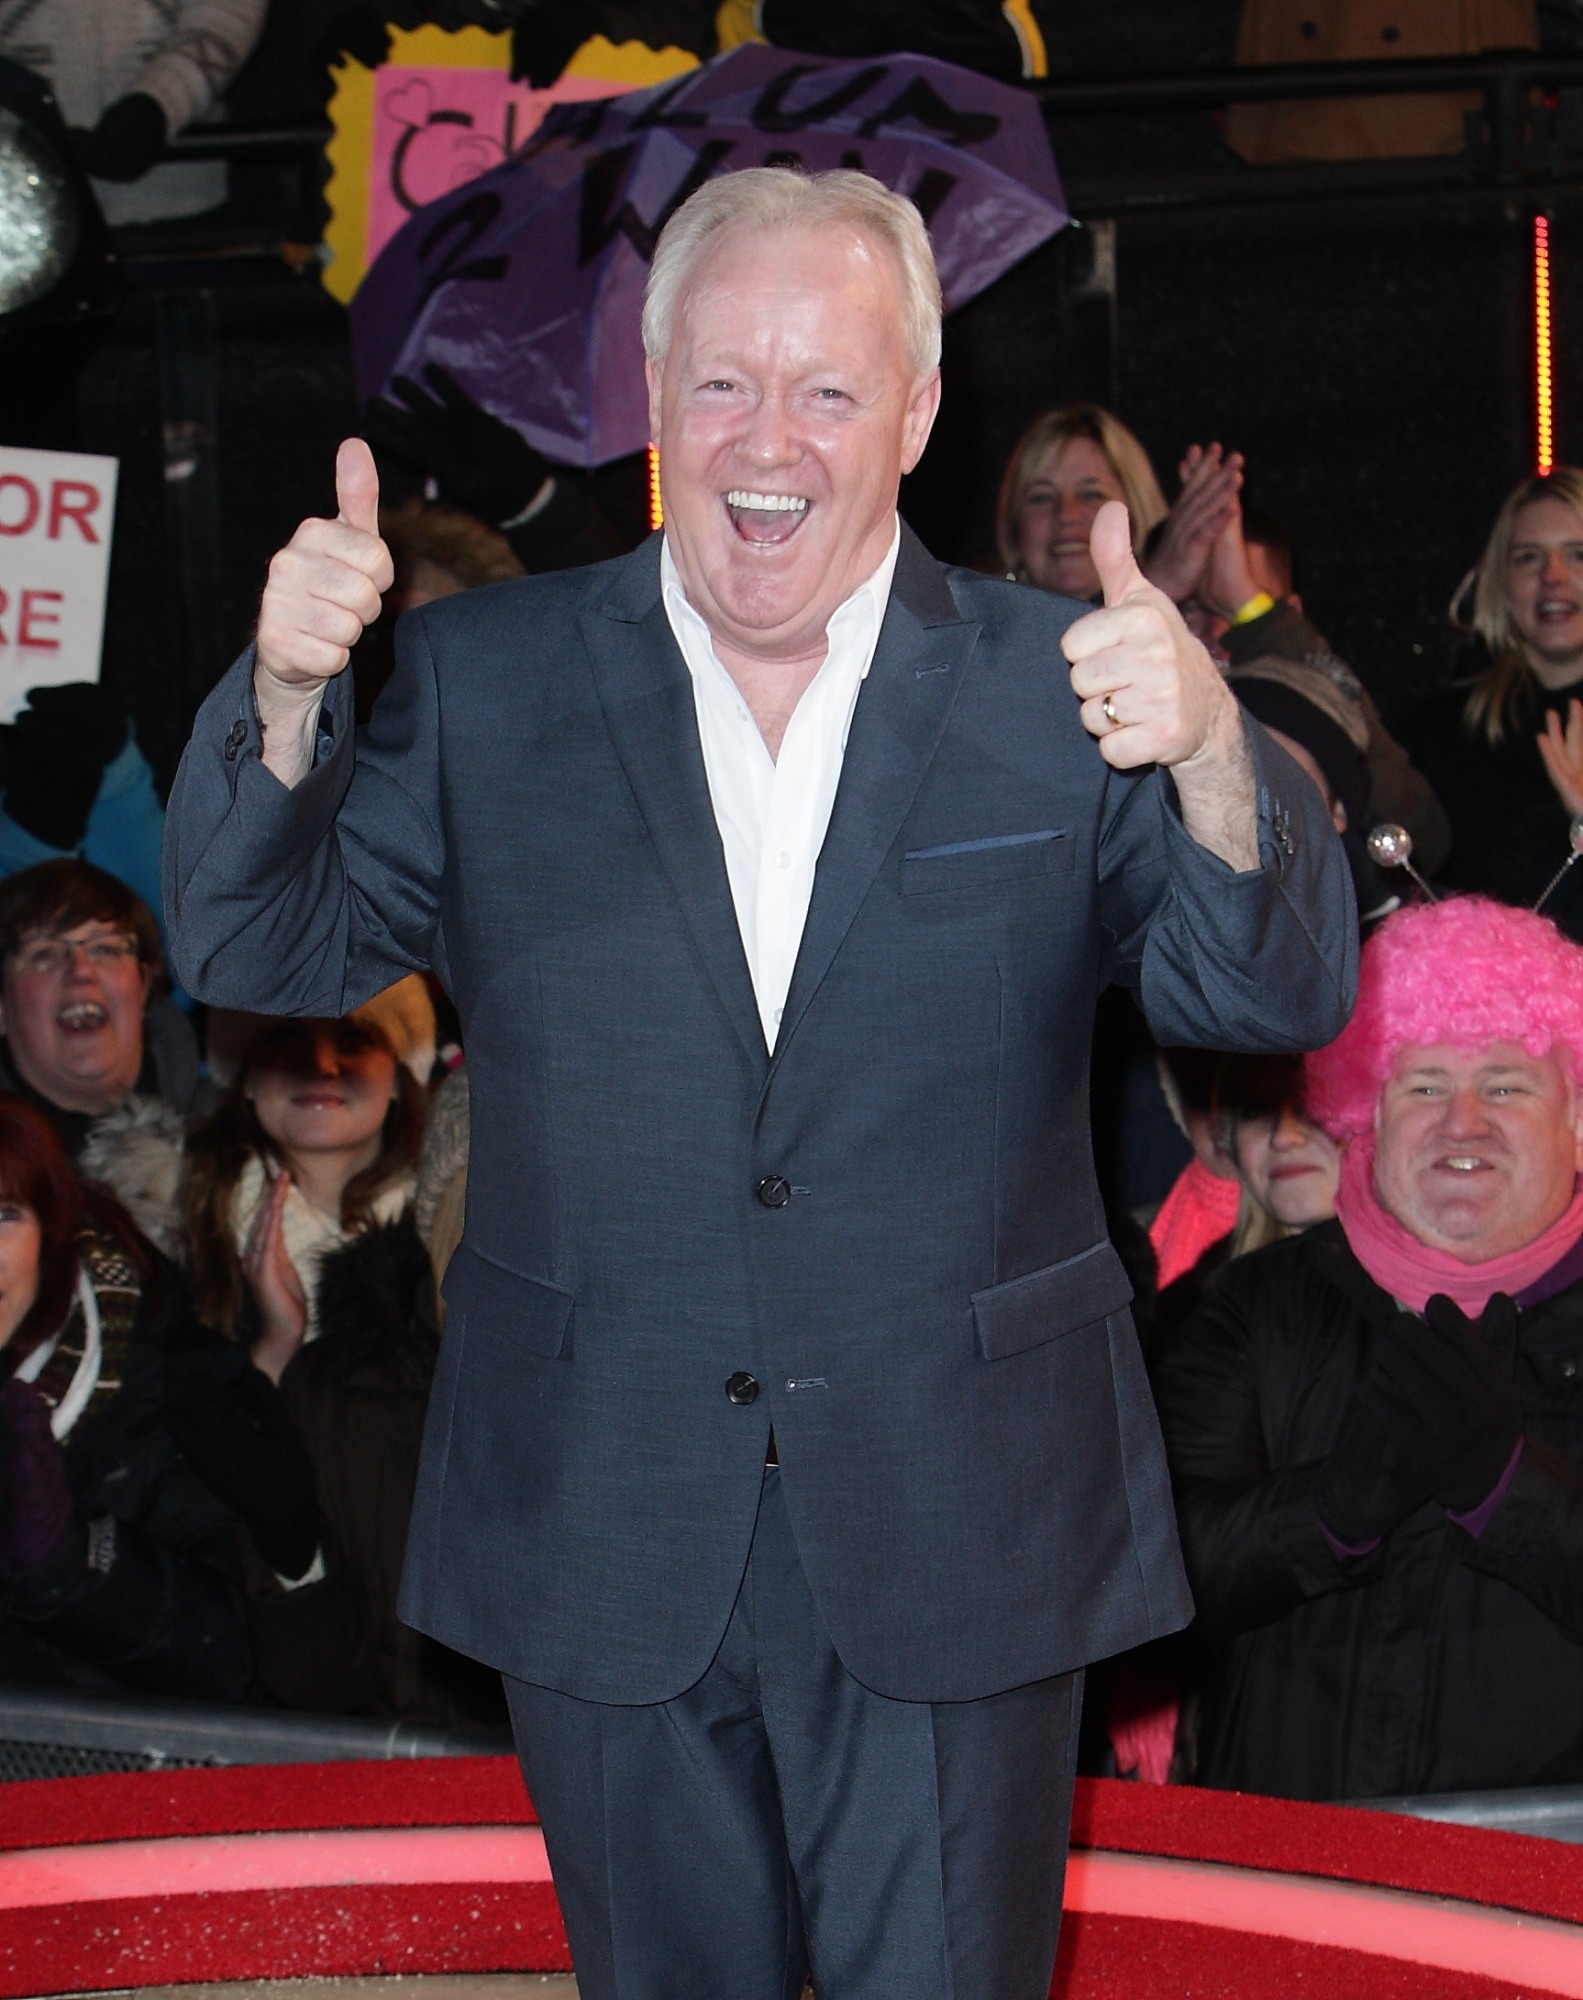 North Shropshire resident and TV star Keith Chegwin dies aged 60